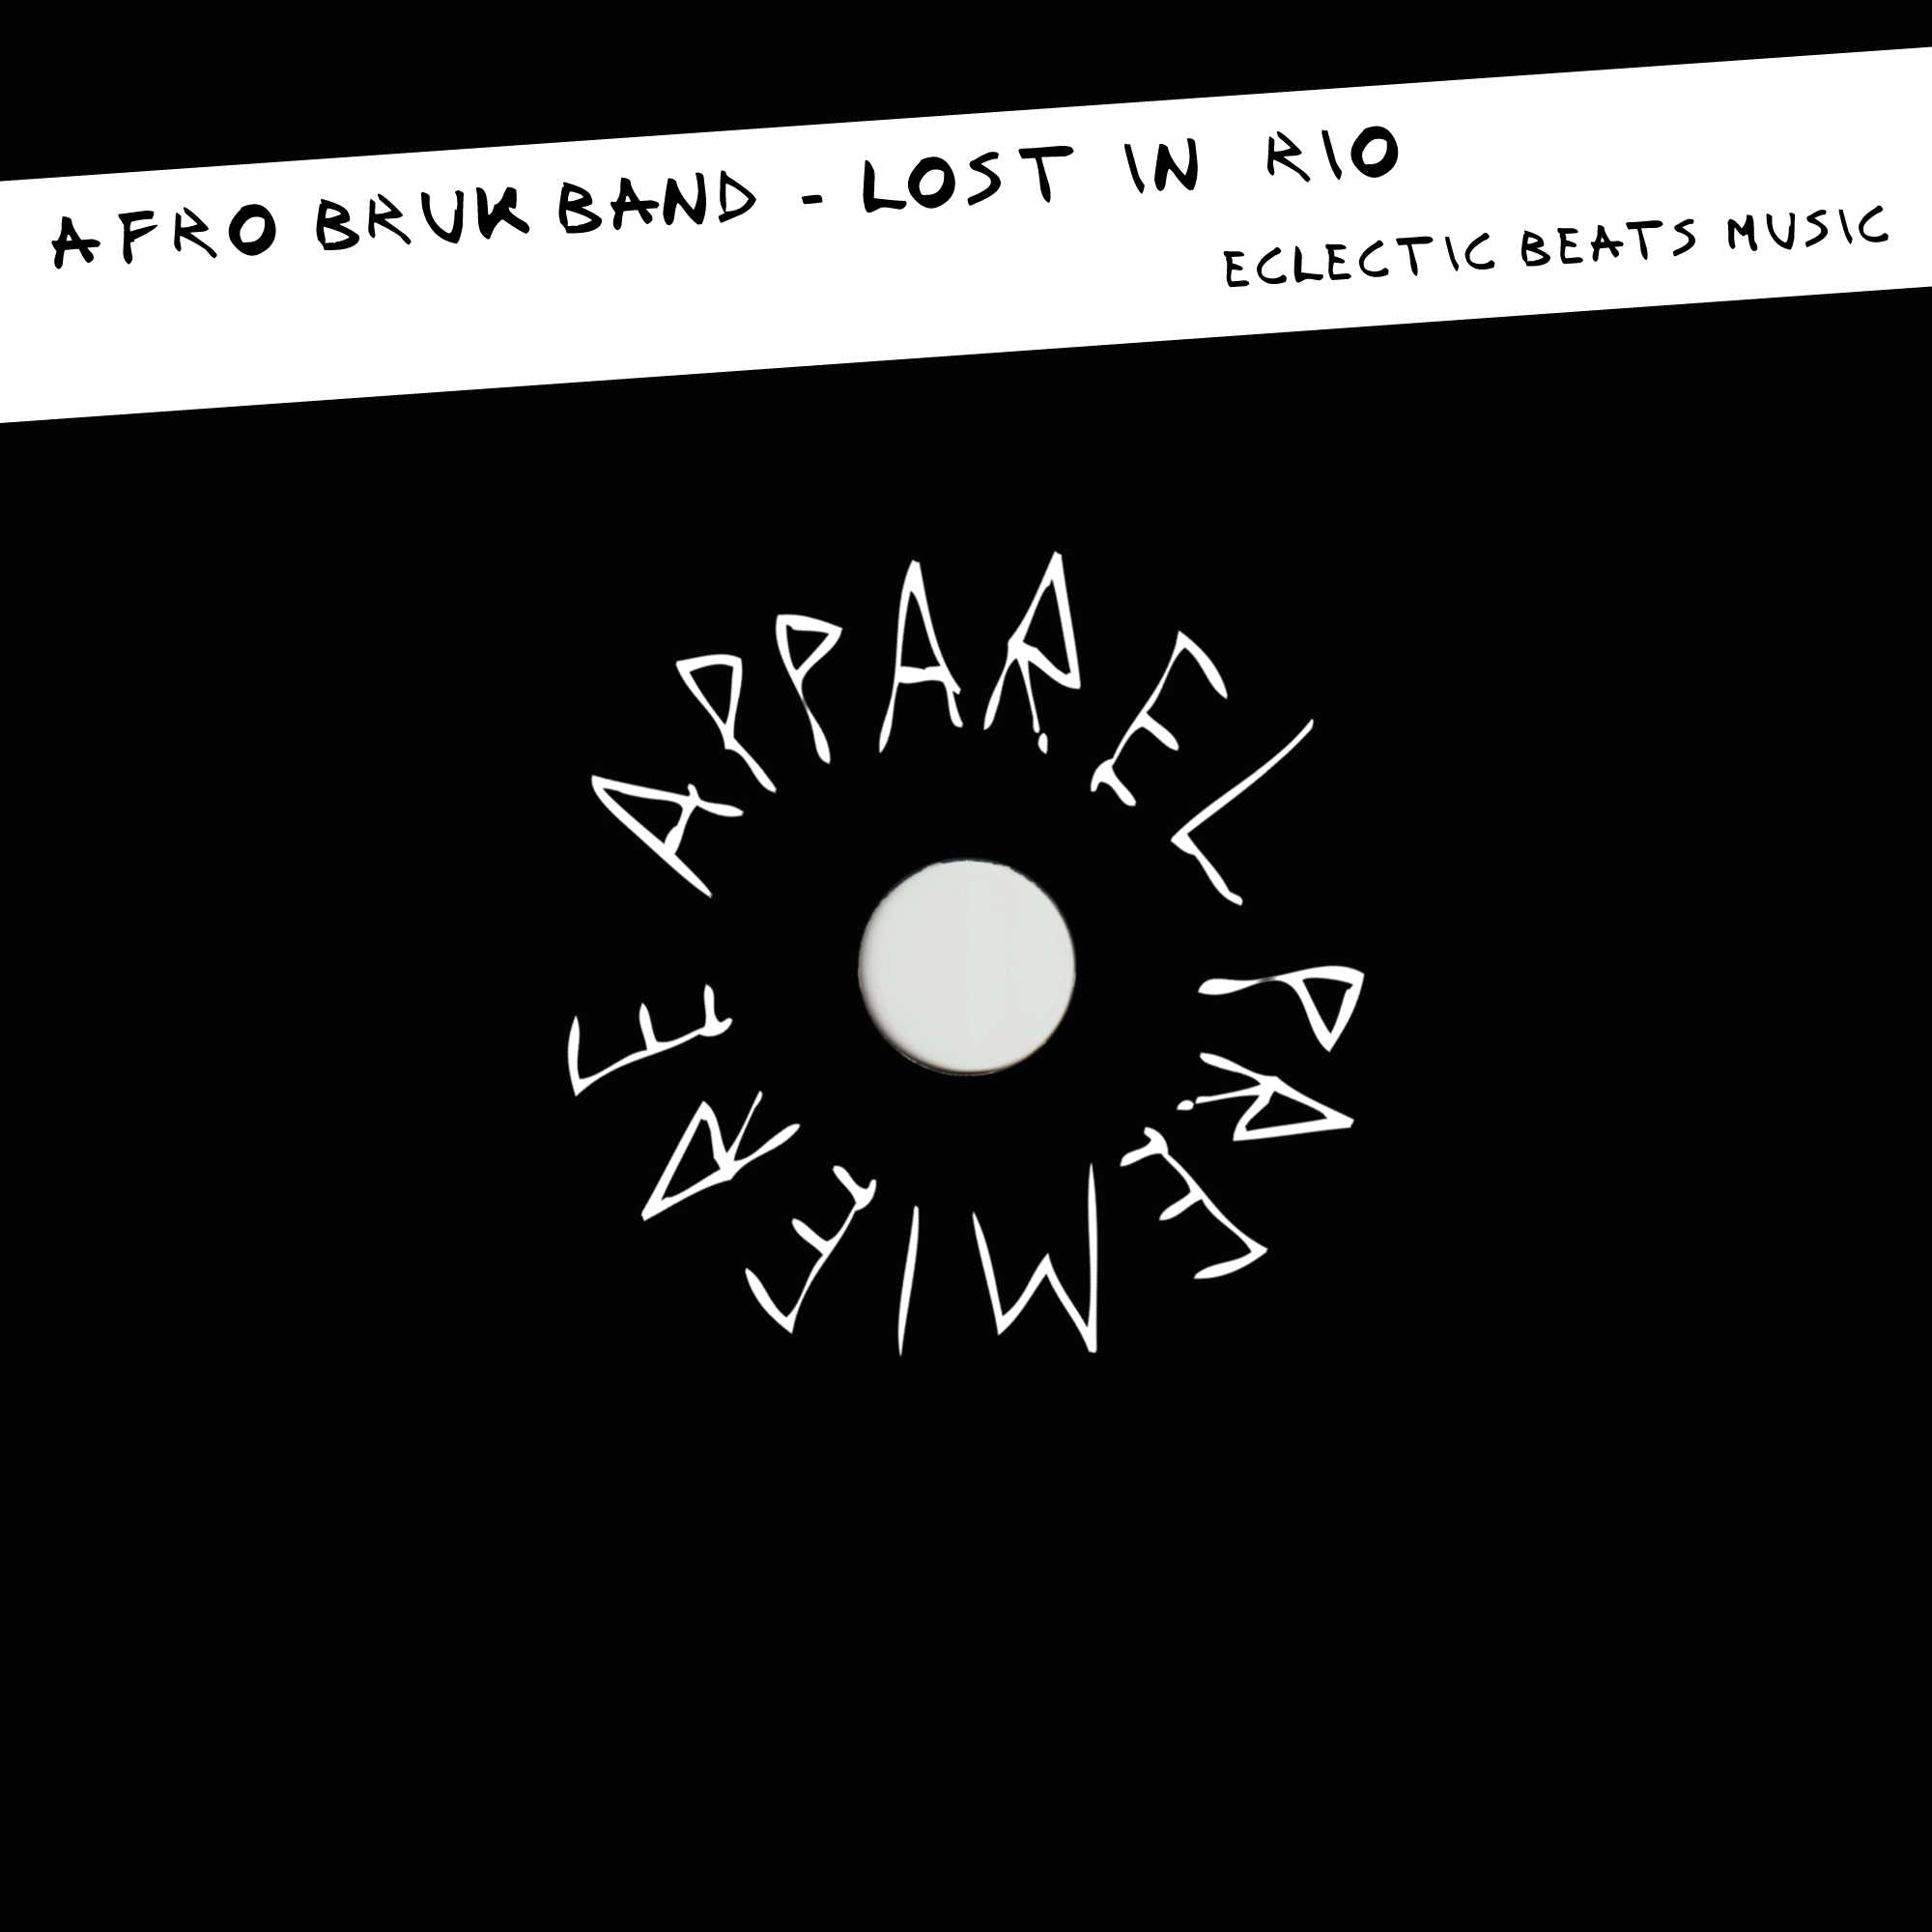 APPAREL PREMIERE: Afro Bruk Band – Lost In Rio [Eclectic Beats Music]